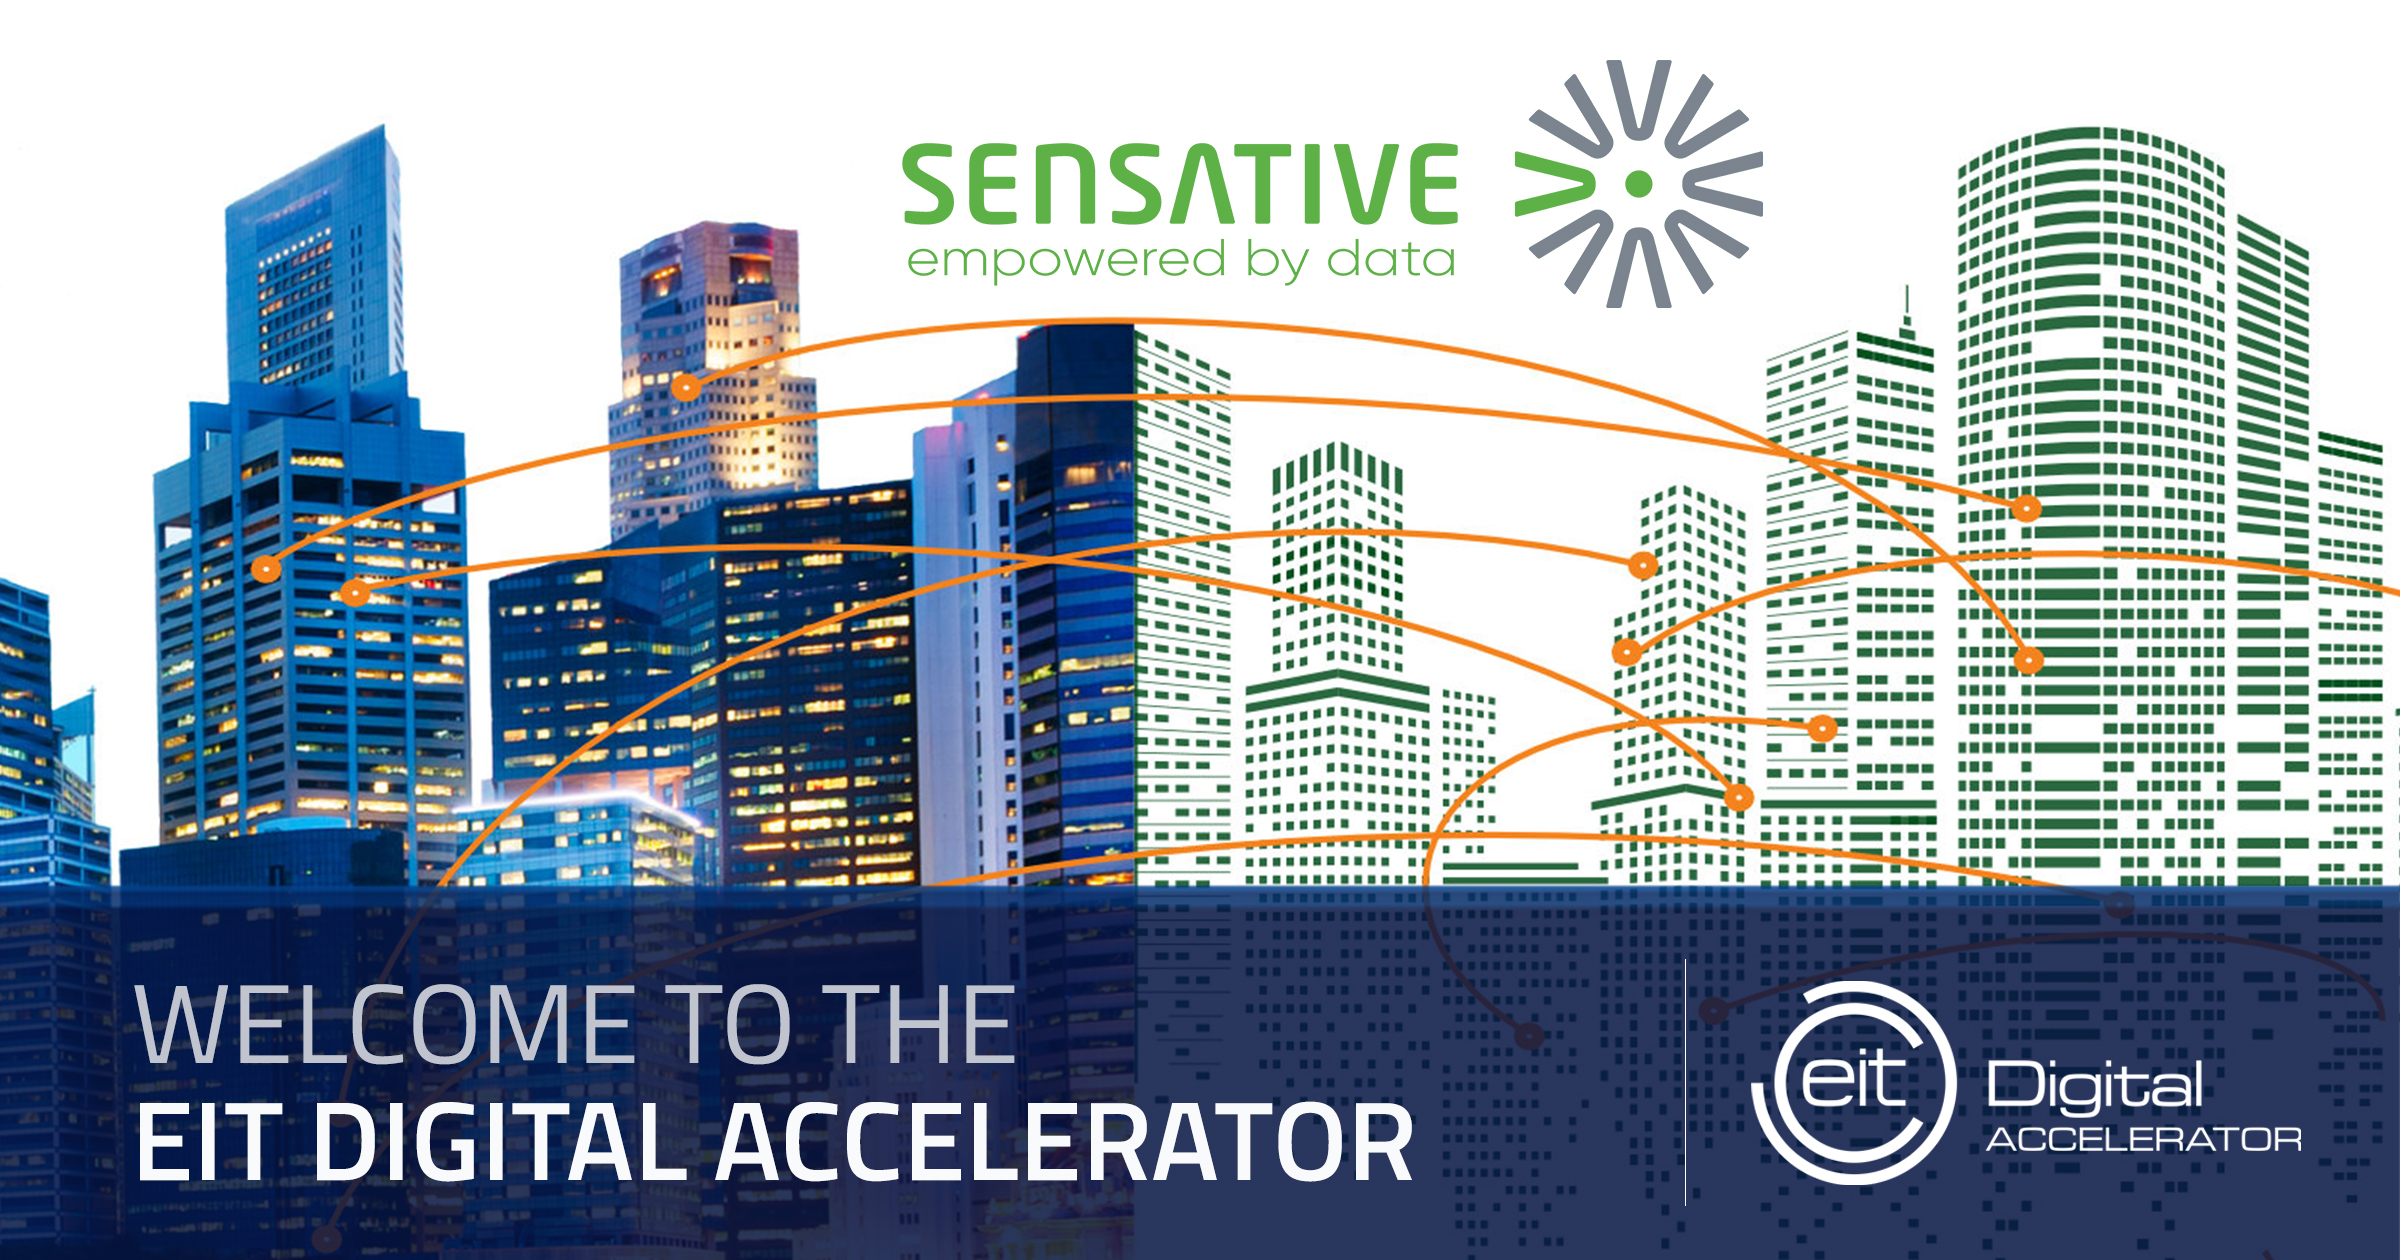 Sensative joins the EIT Digital Accelerator